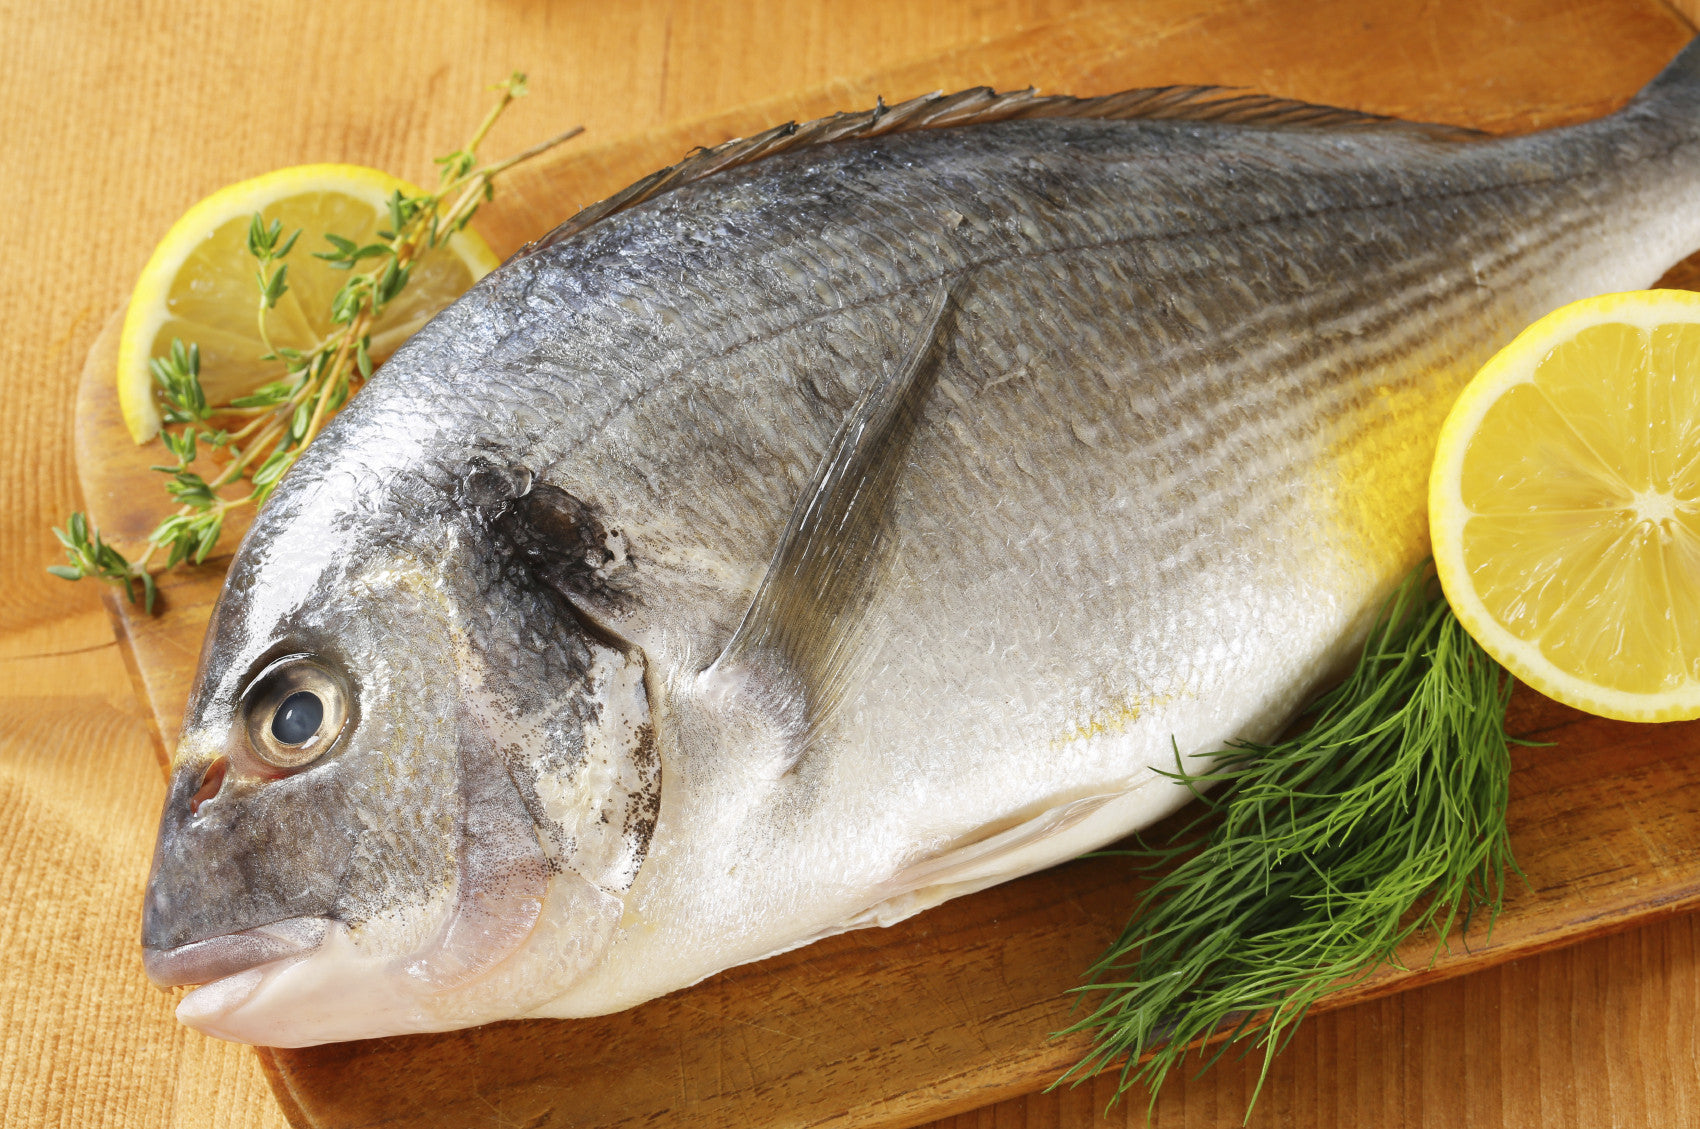 How to spot fresh fish at the market